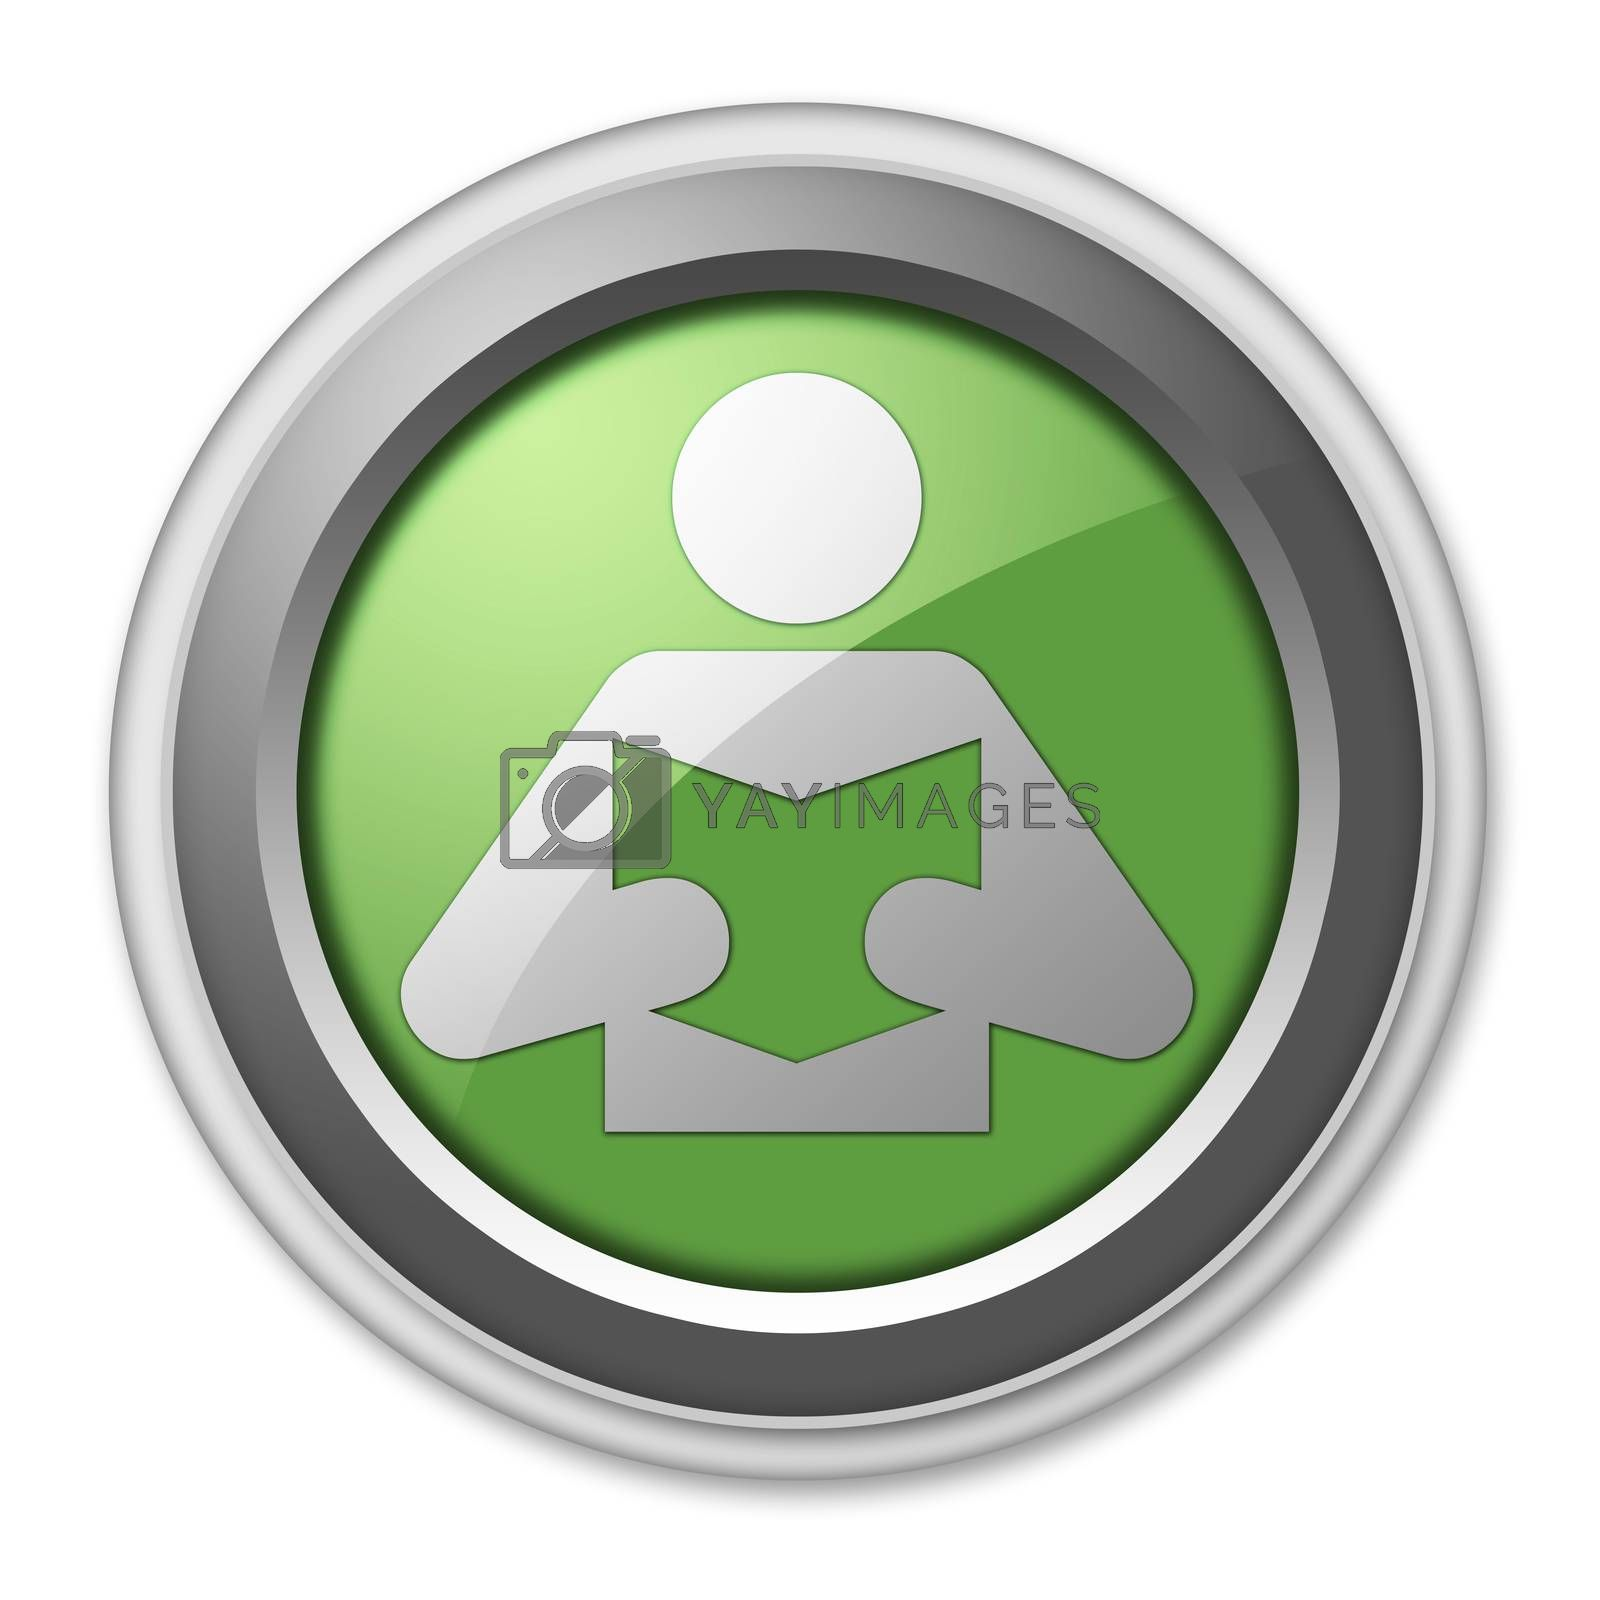 Icon, Button, Pictogram with Library symbol